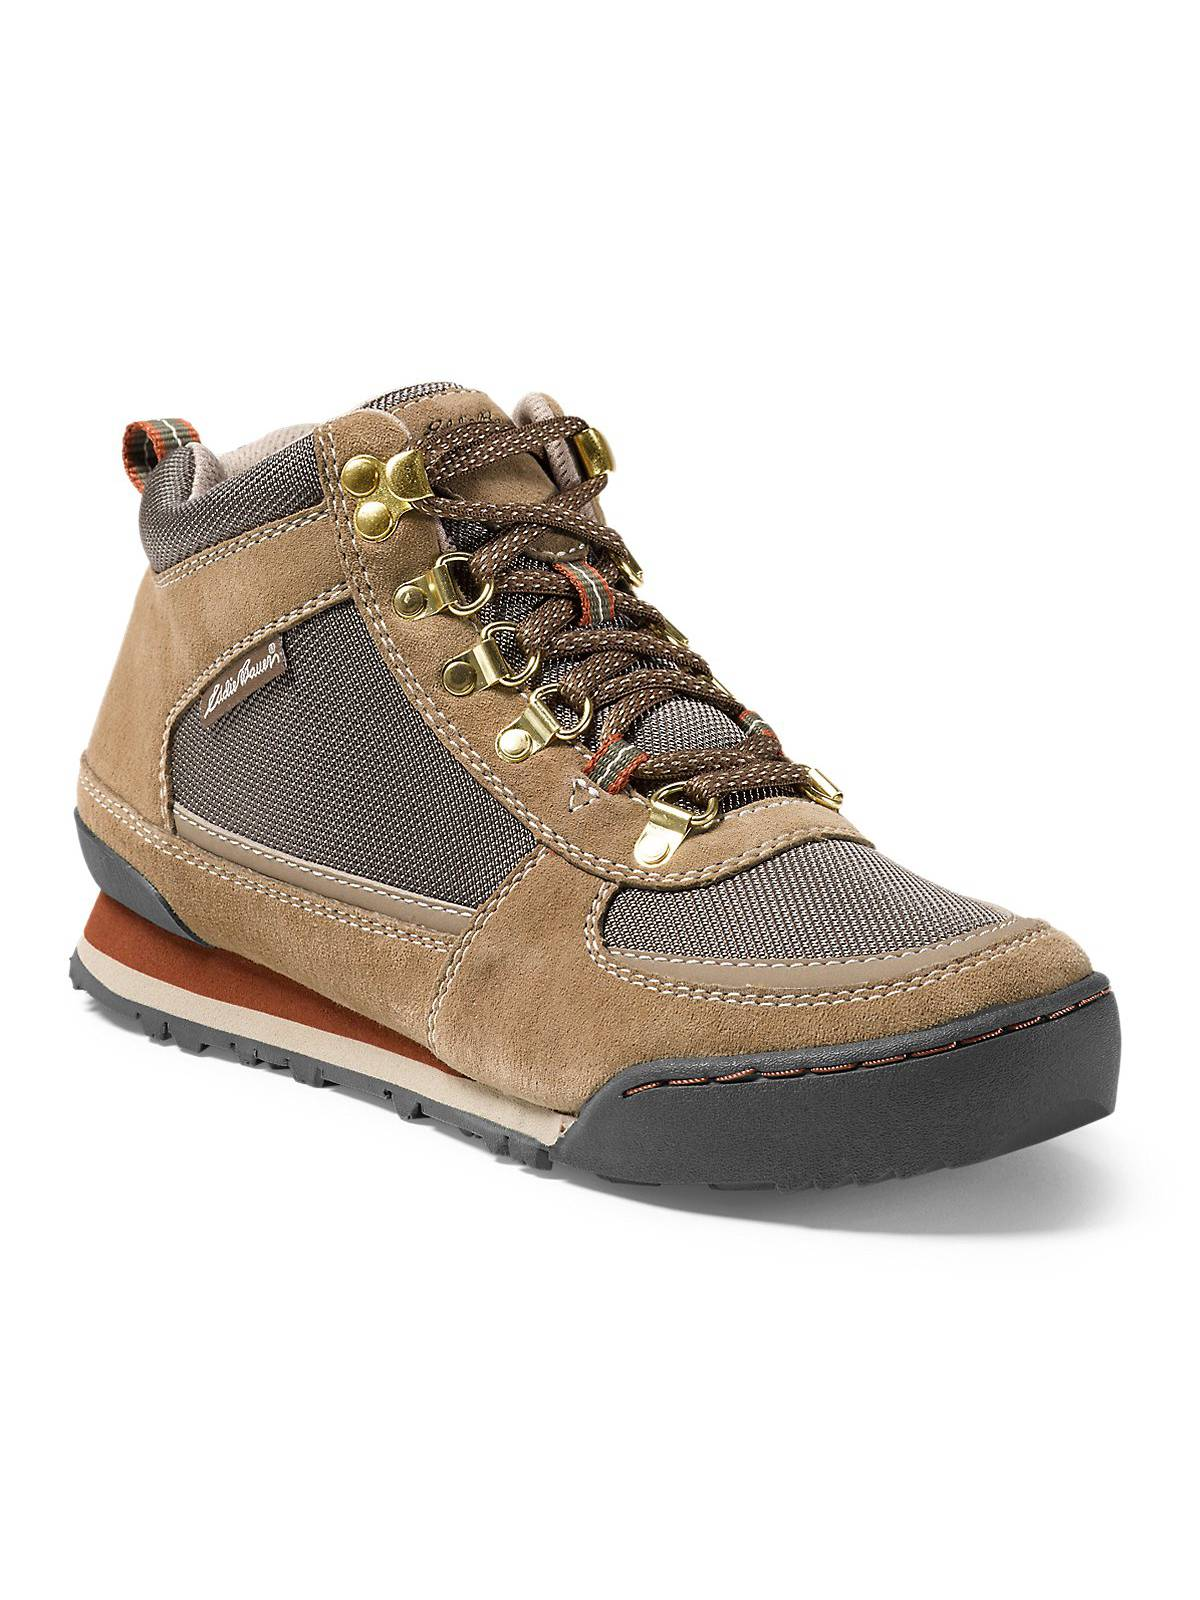 eddie bauer hiking shoes review